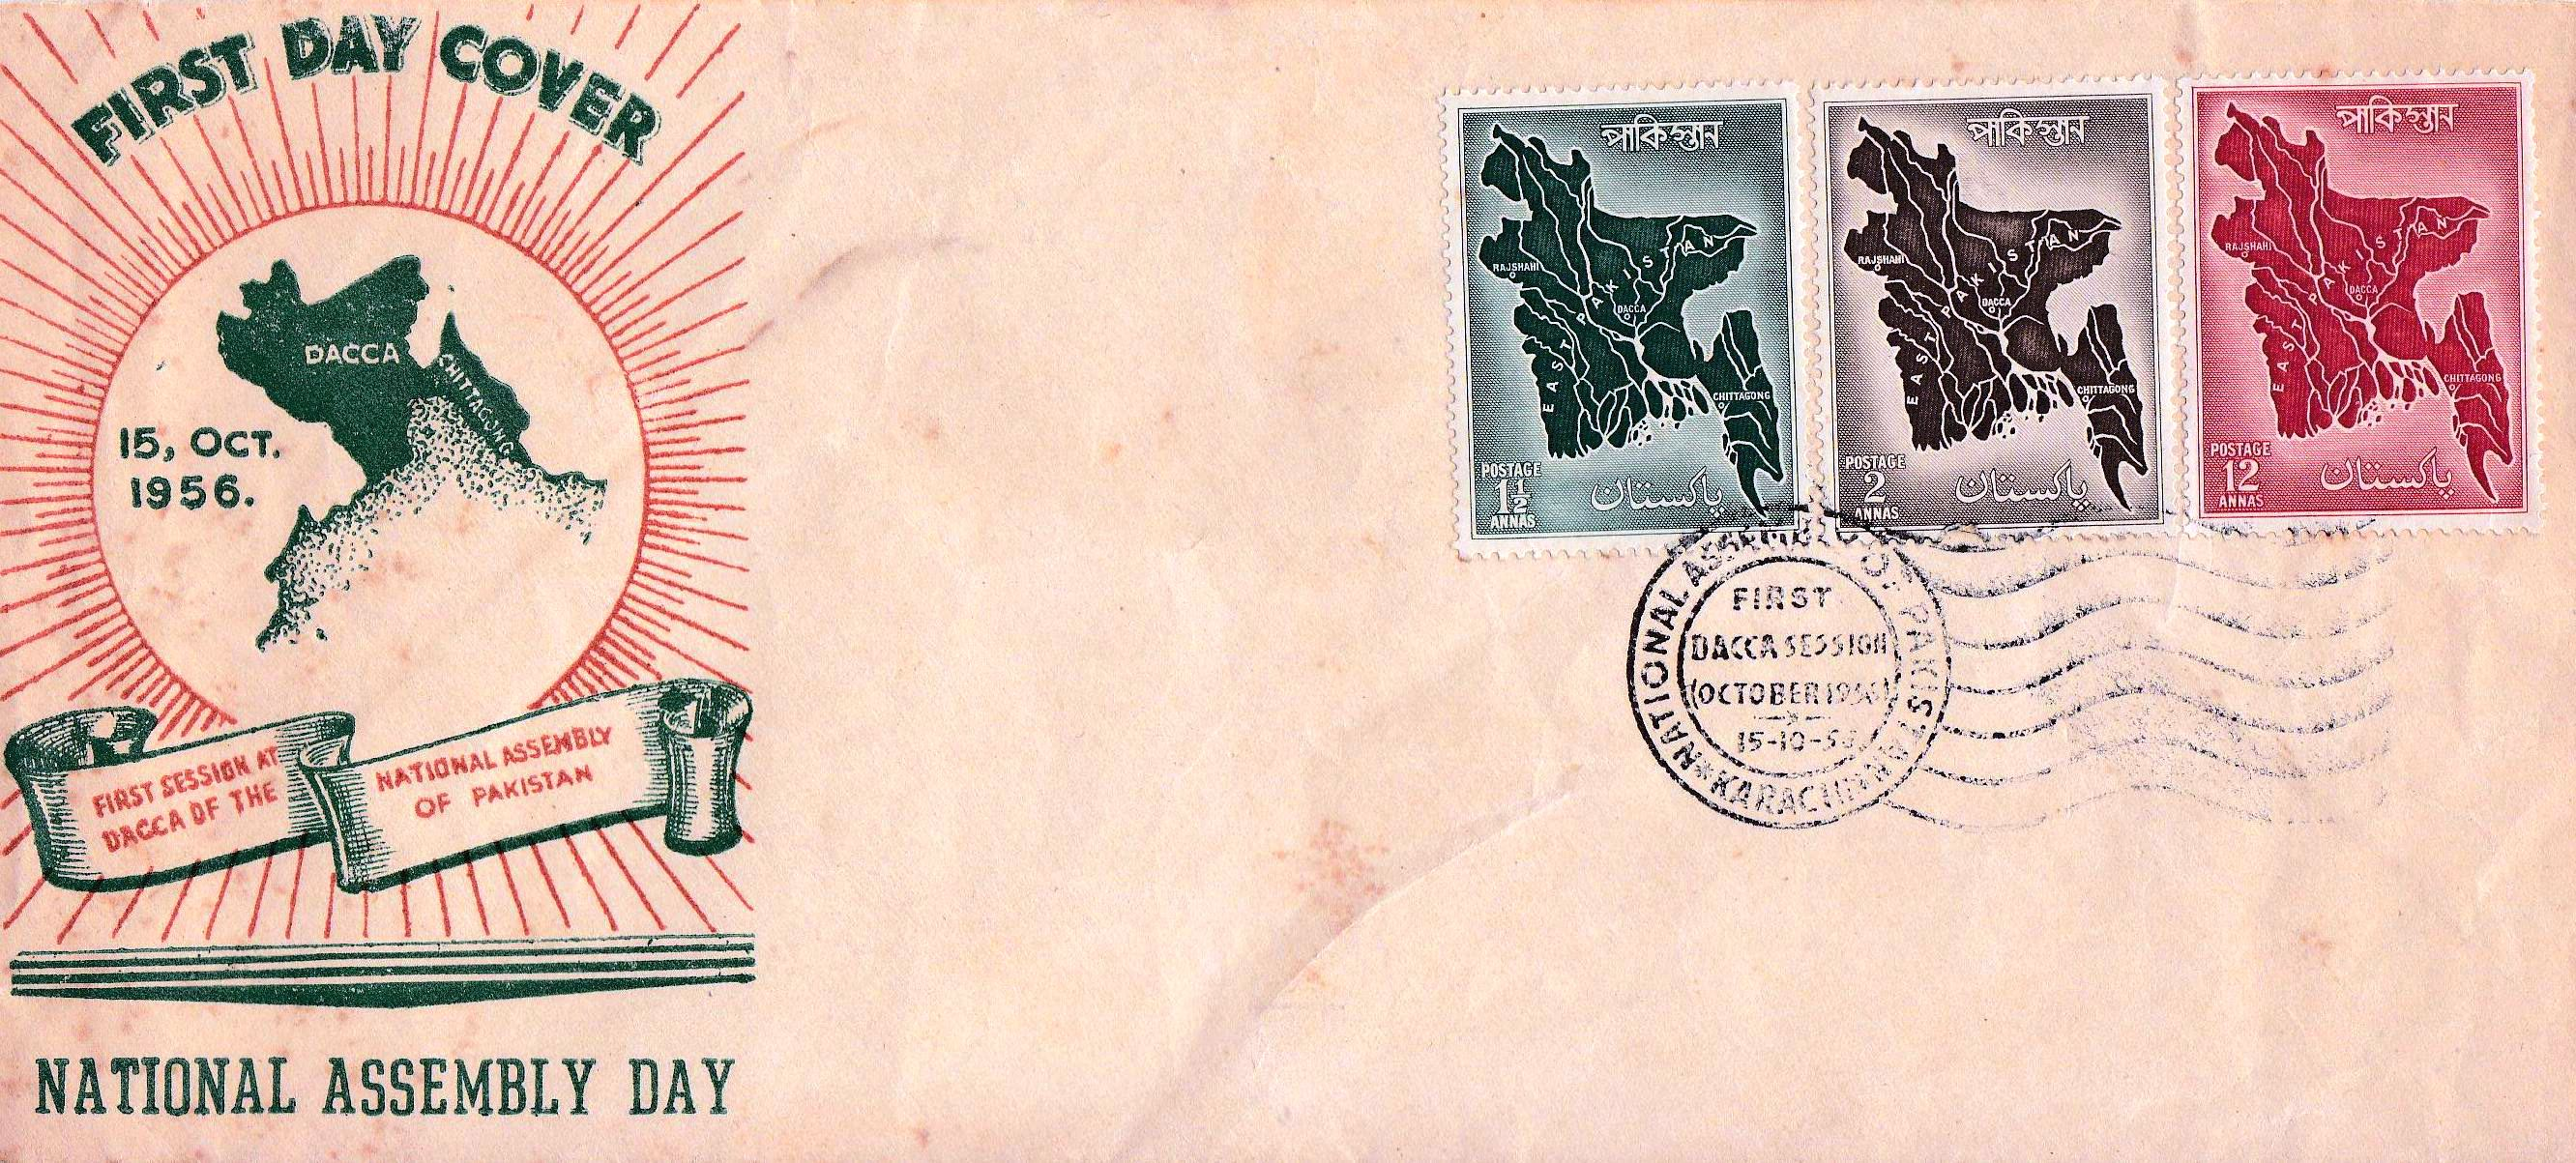 Pakistan Fdc 1956 & Stamps National Assembly Session Dacca